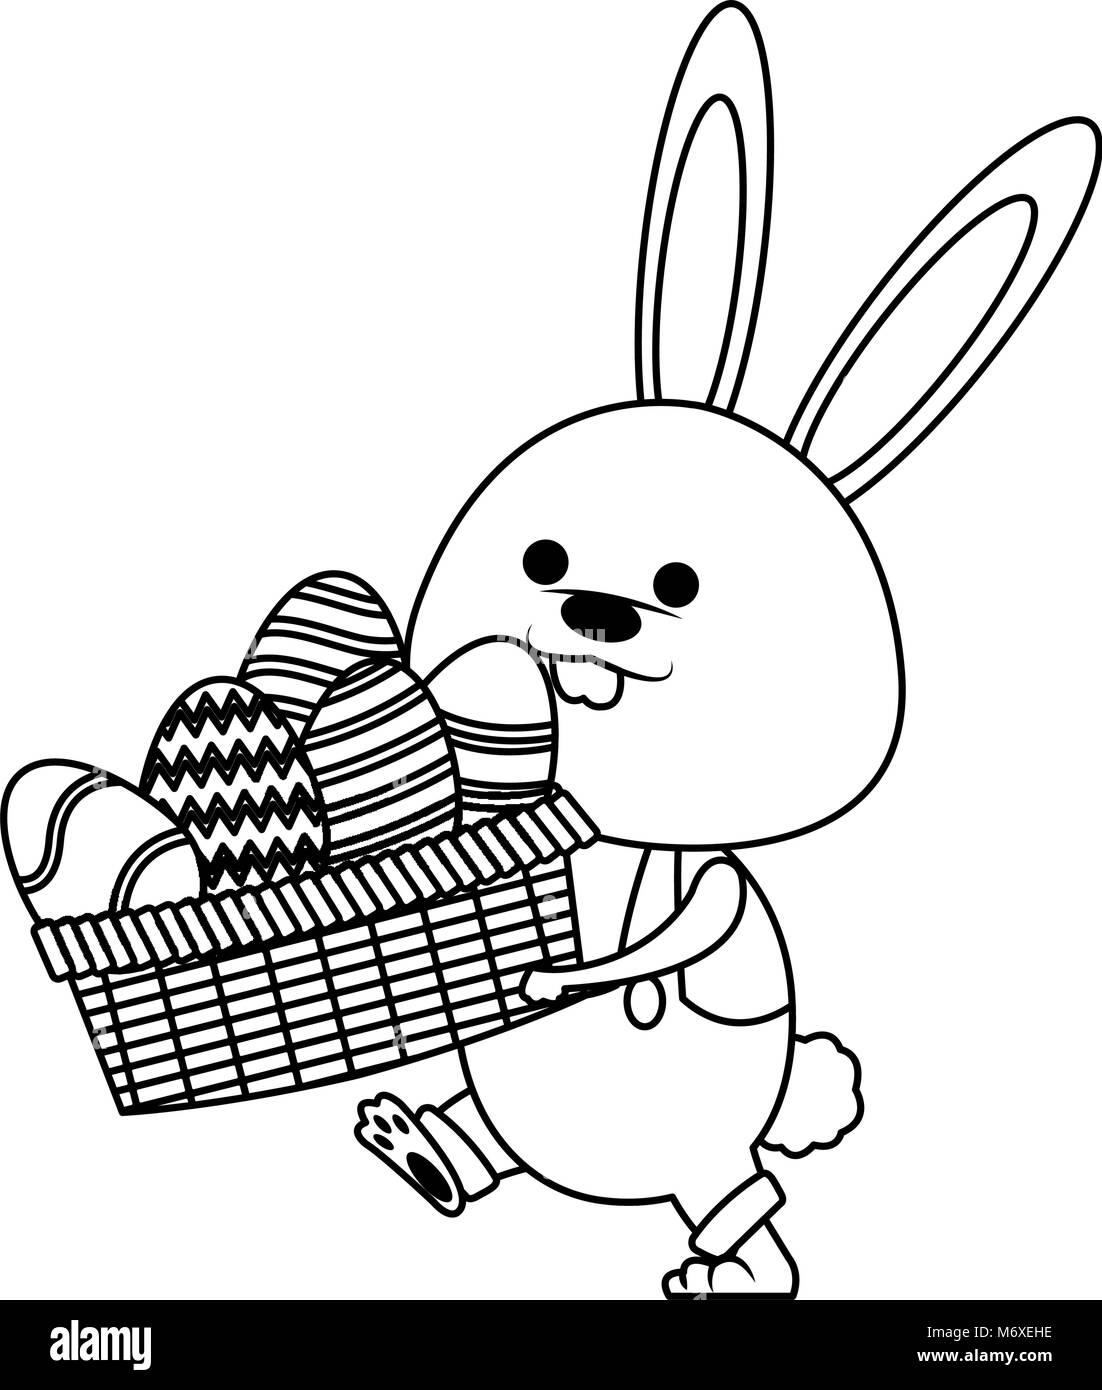 Cute Rabbit Holding Basket With Easter Eggs